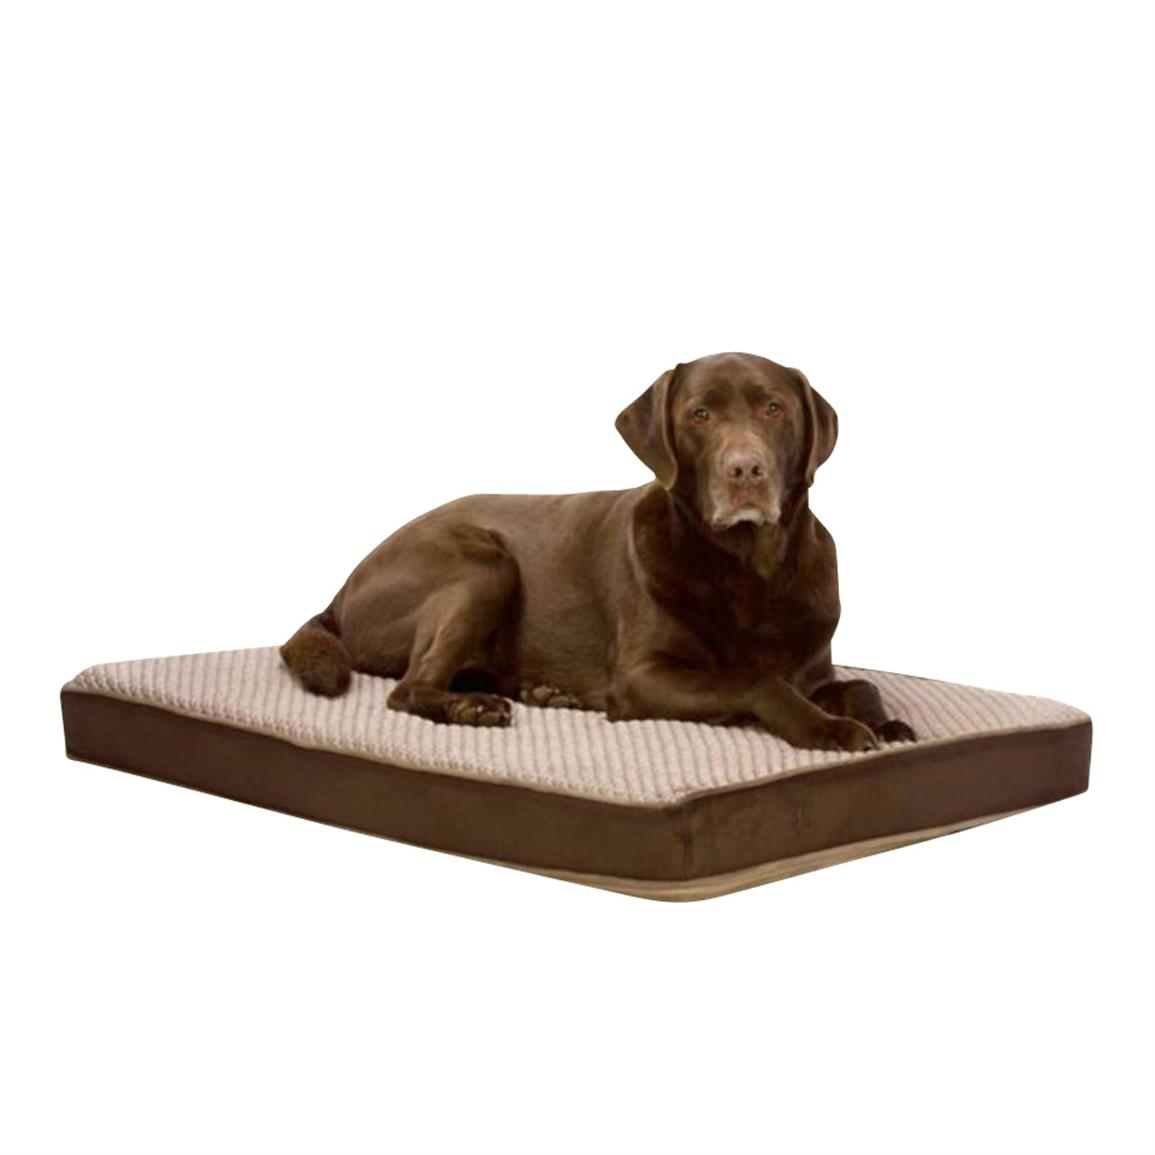 Self-Cooling Dog Bed, Brown